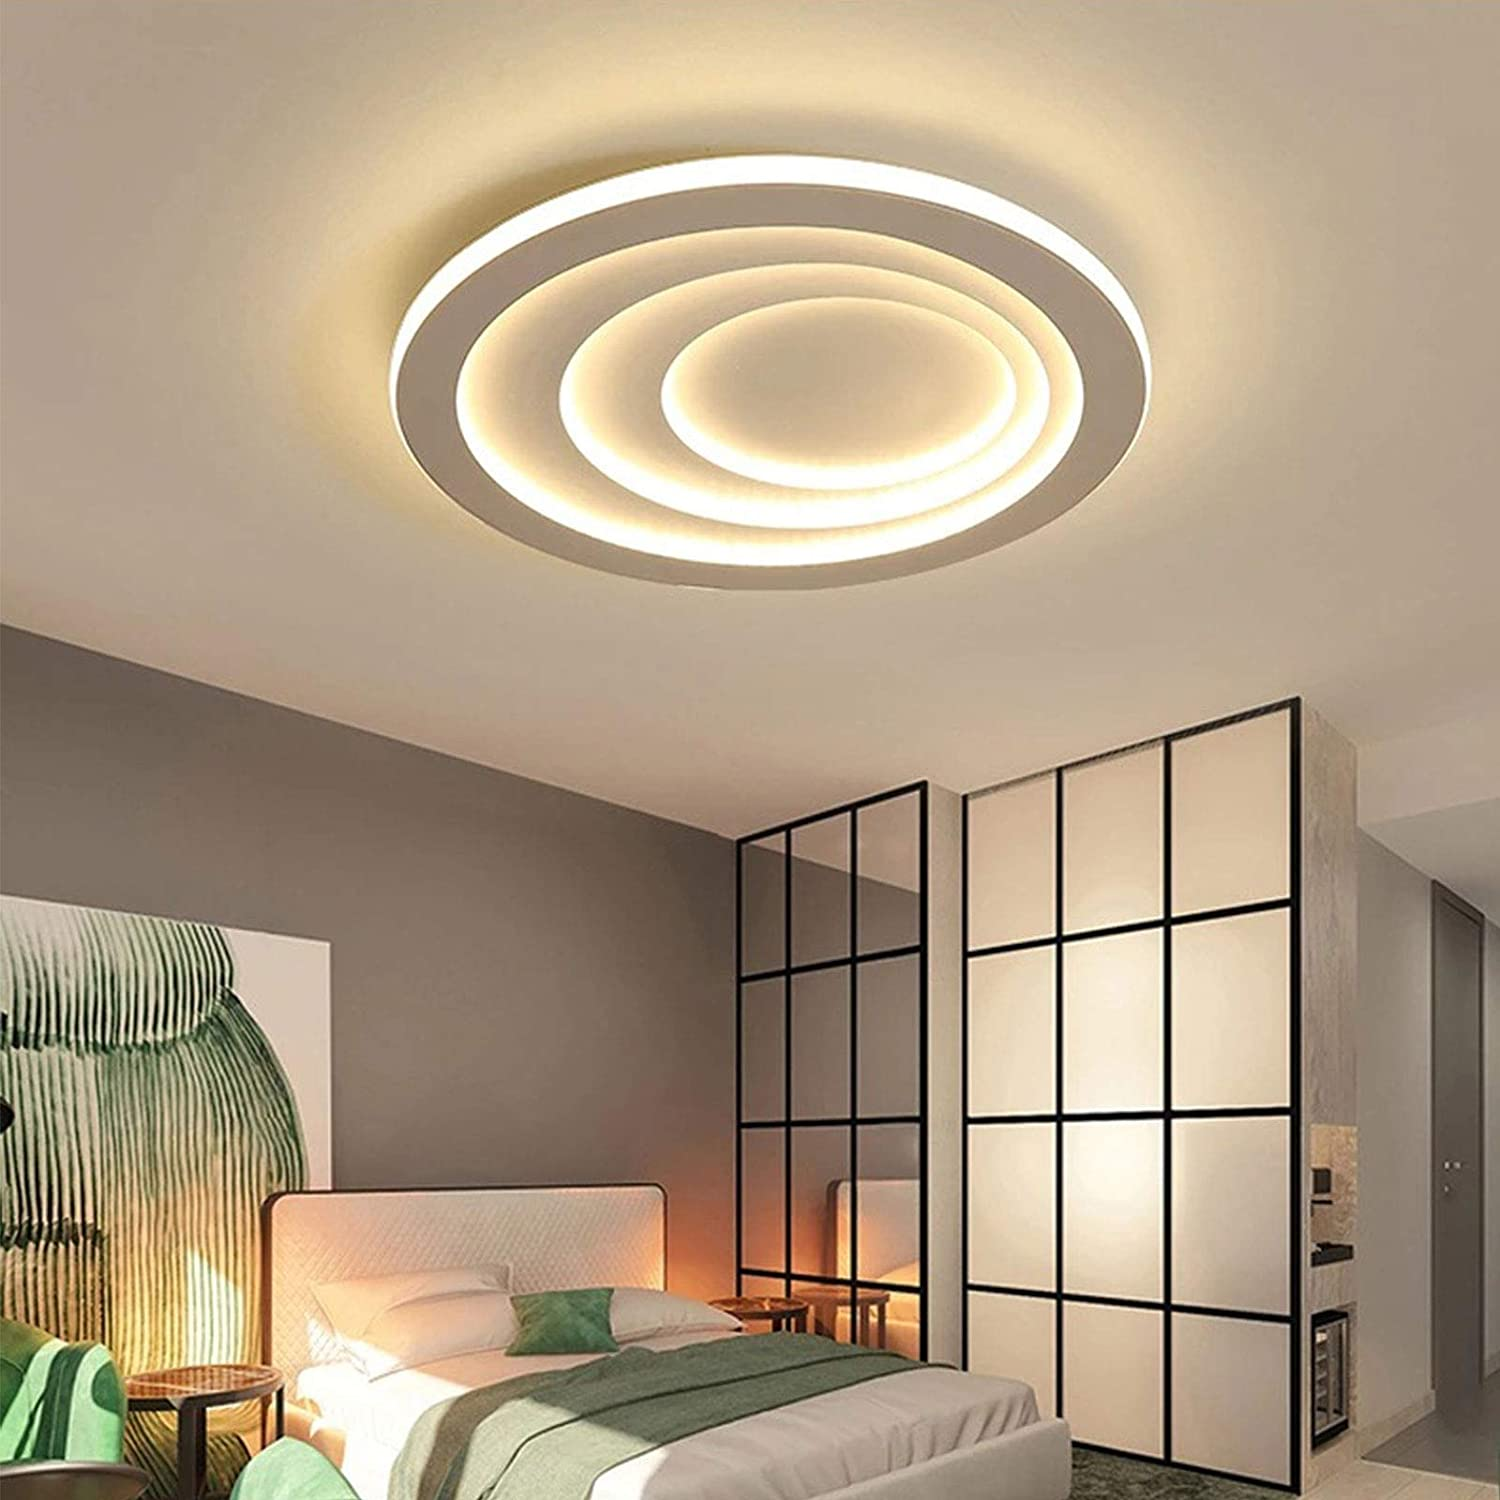 19.7 Ceiling Lamp Acrylic Warm White Diameter 50cm-Stepless Dimming with Simple Ceiling Light for Dining Room Bedroom Livingroom